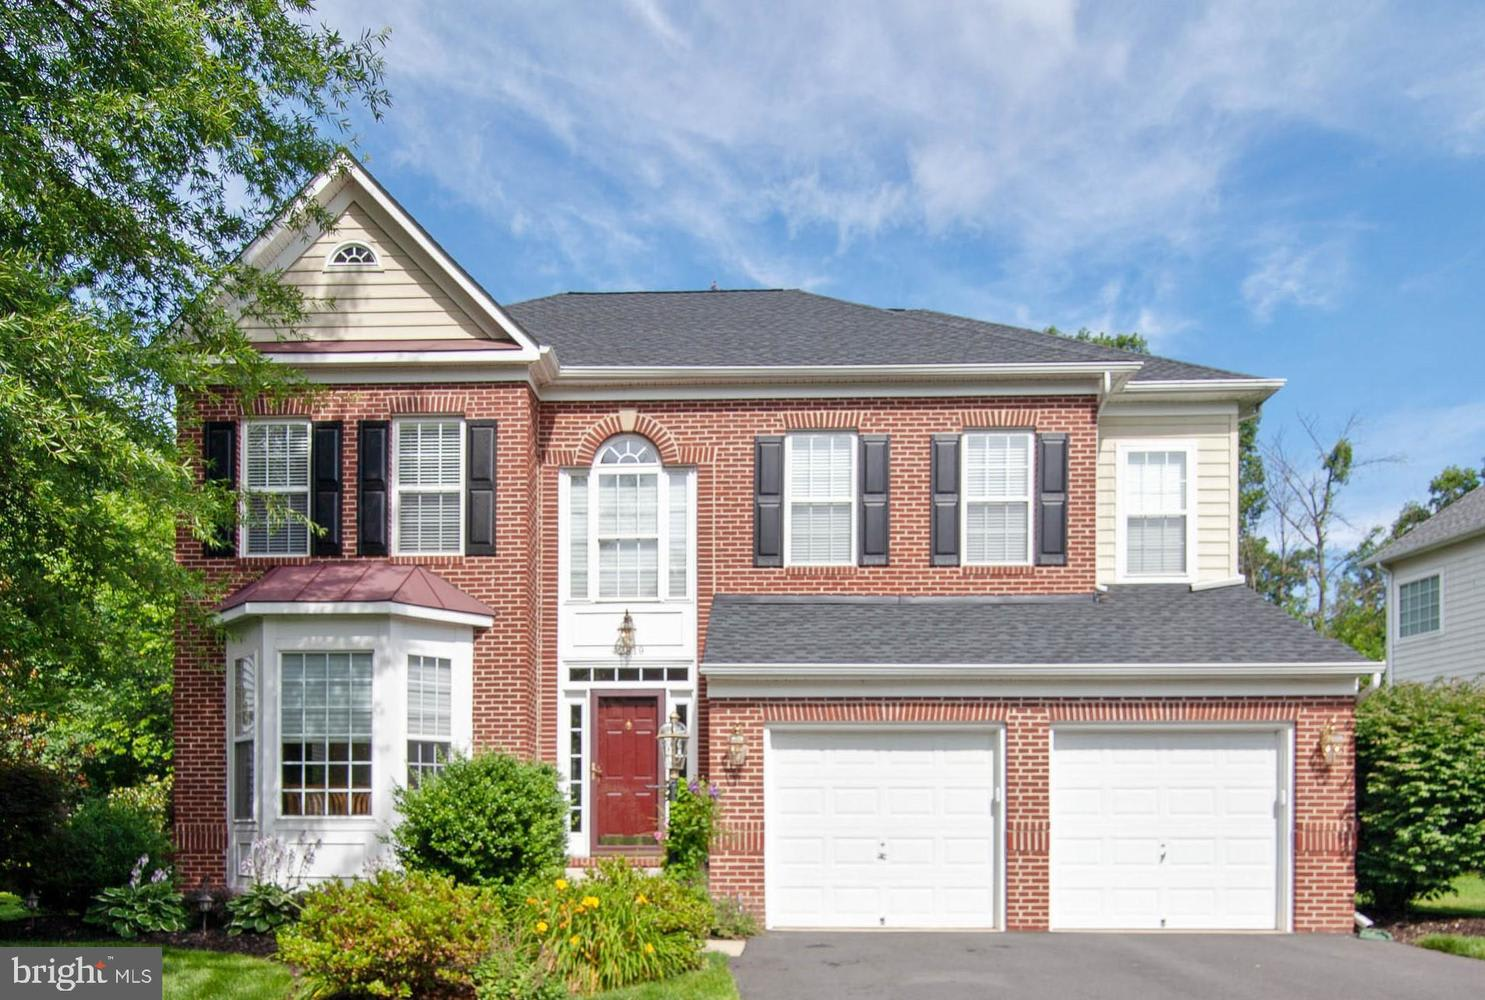 42819 Meander Xing Ct photo